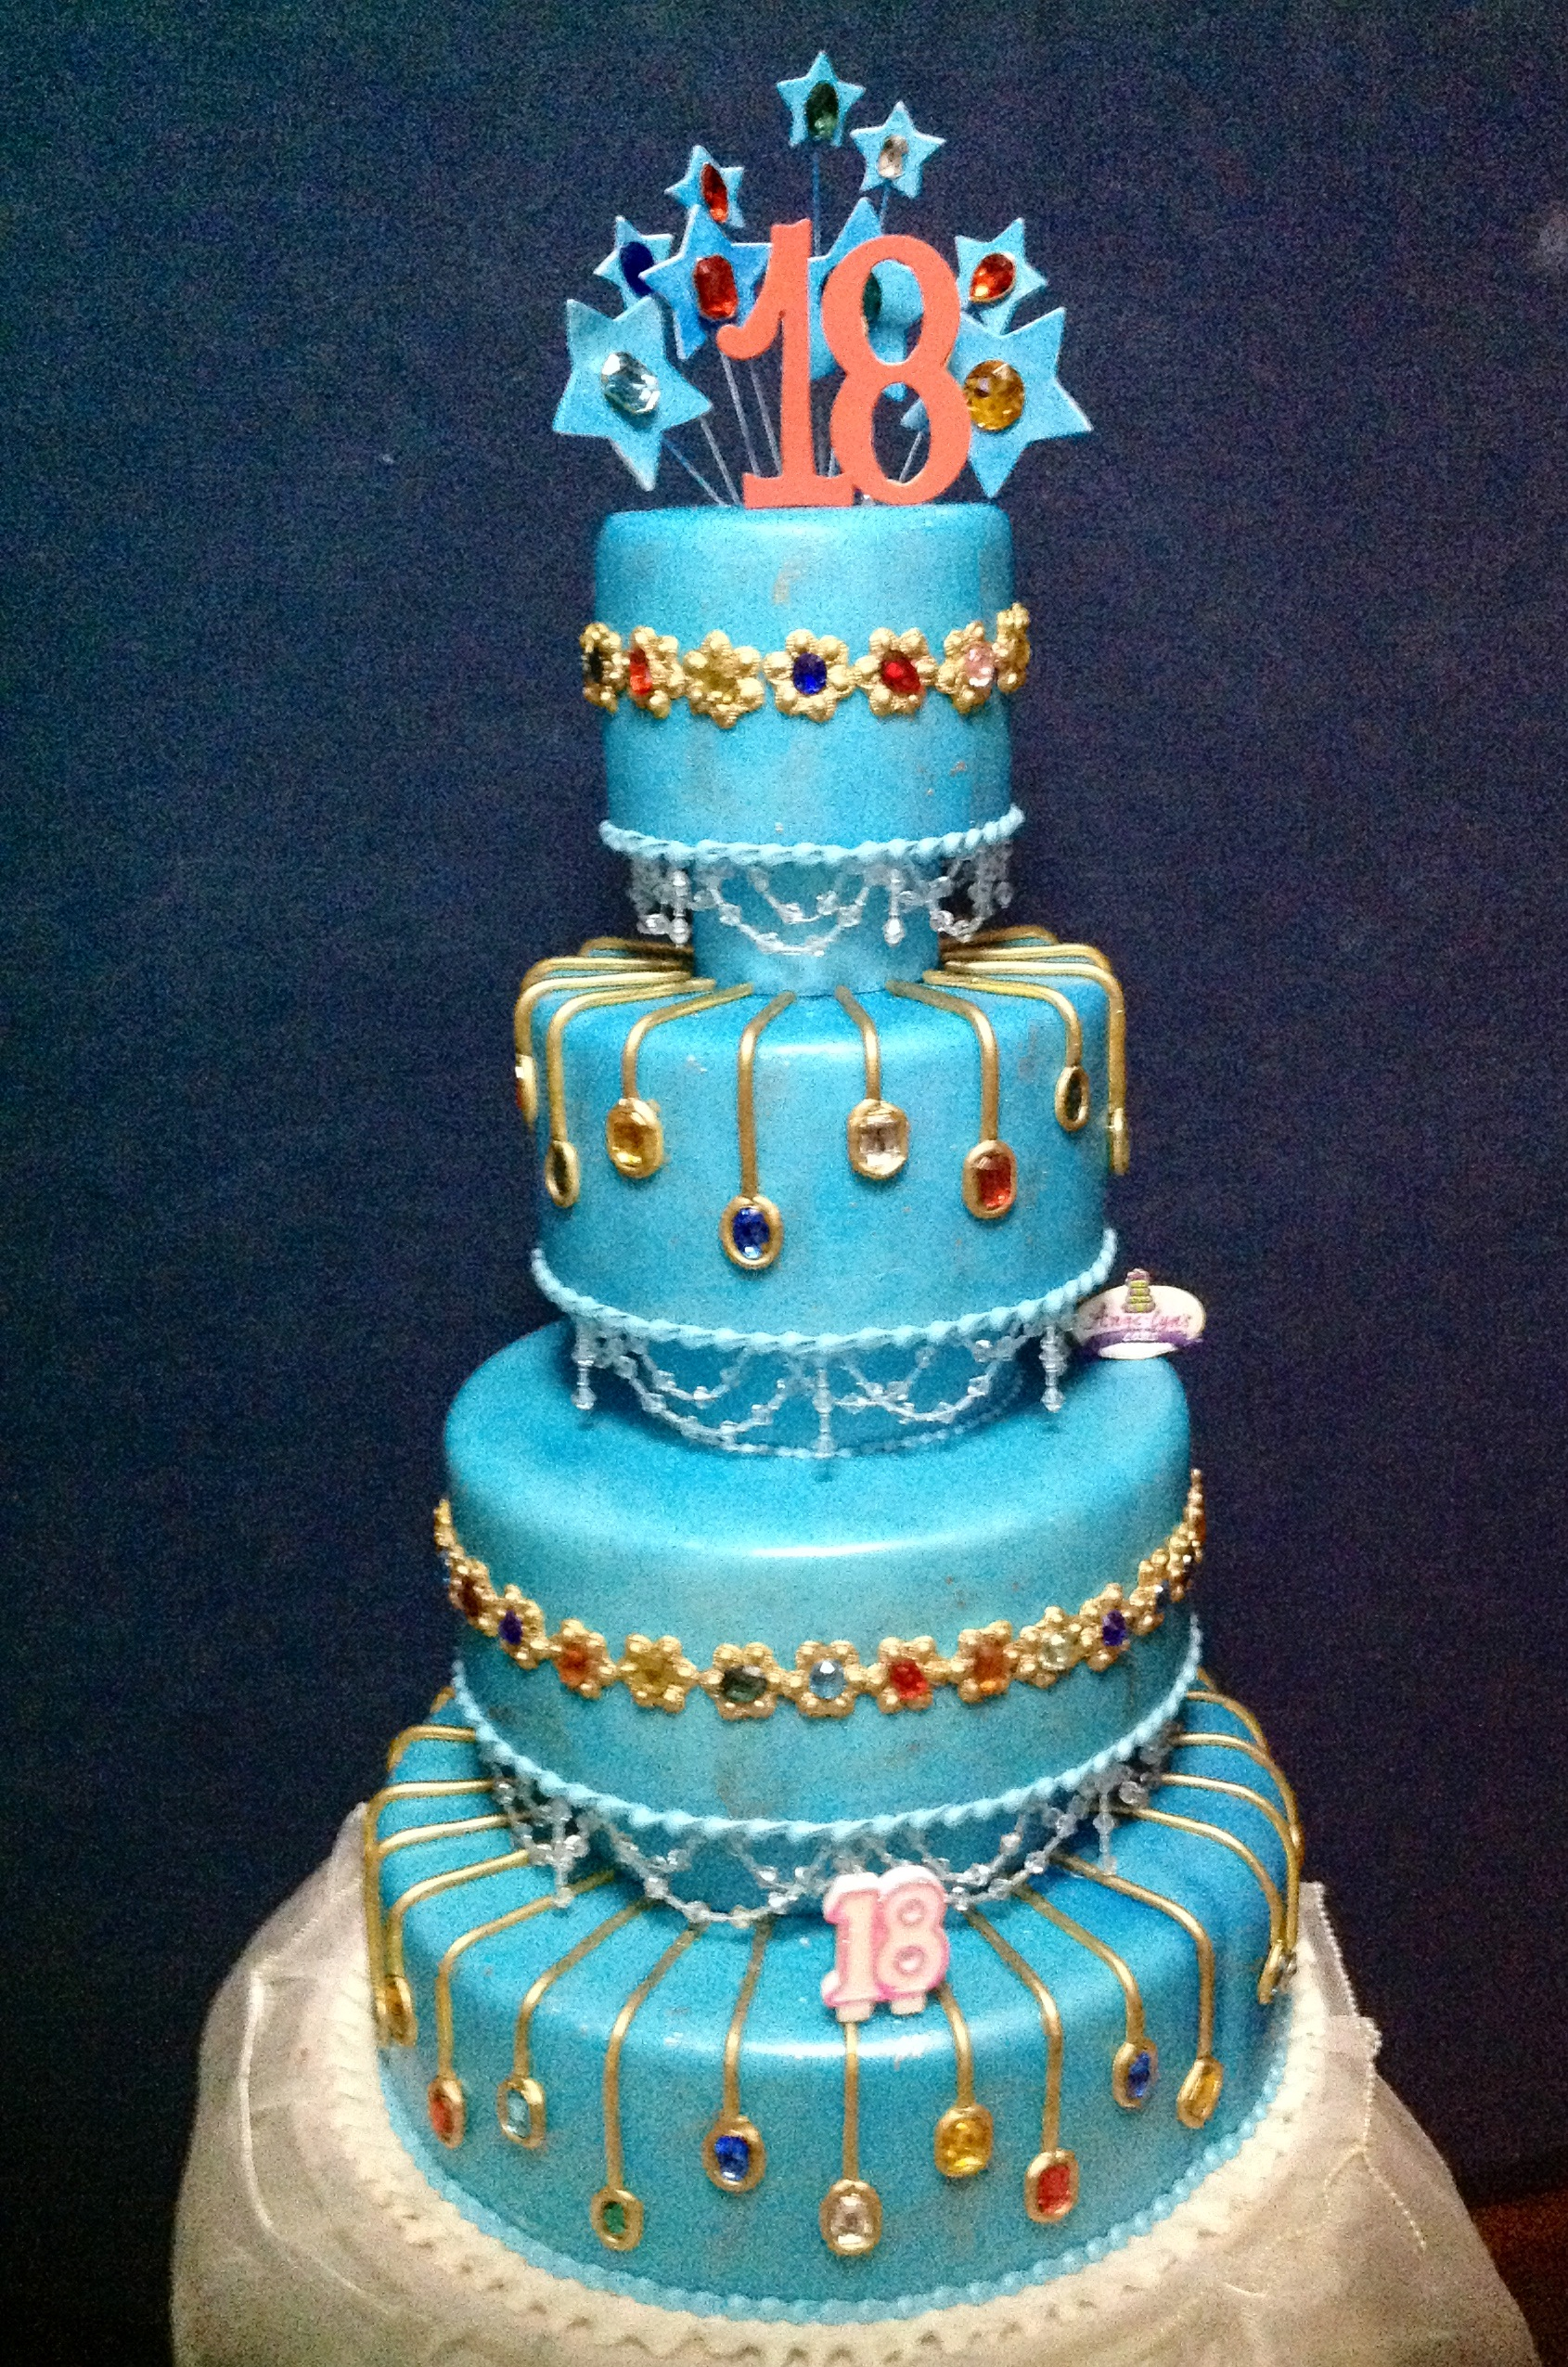 Cake Design In Charlwood : Birthday/Debut Archives - Angelyn Cakes